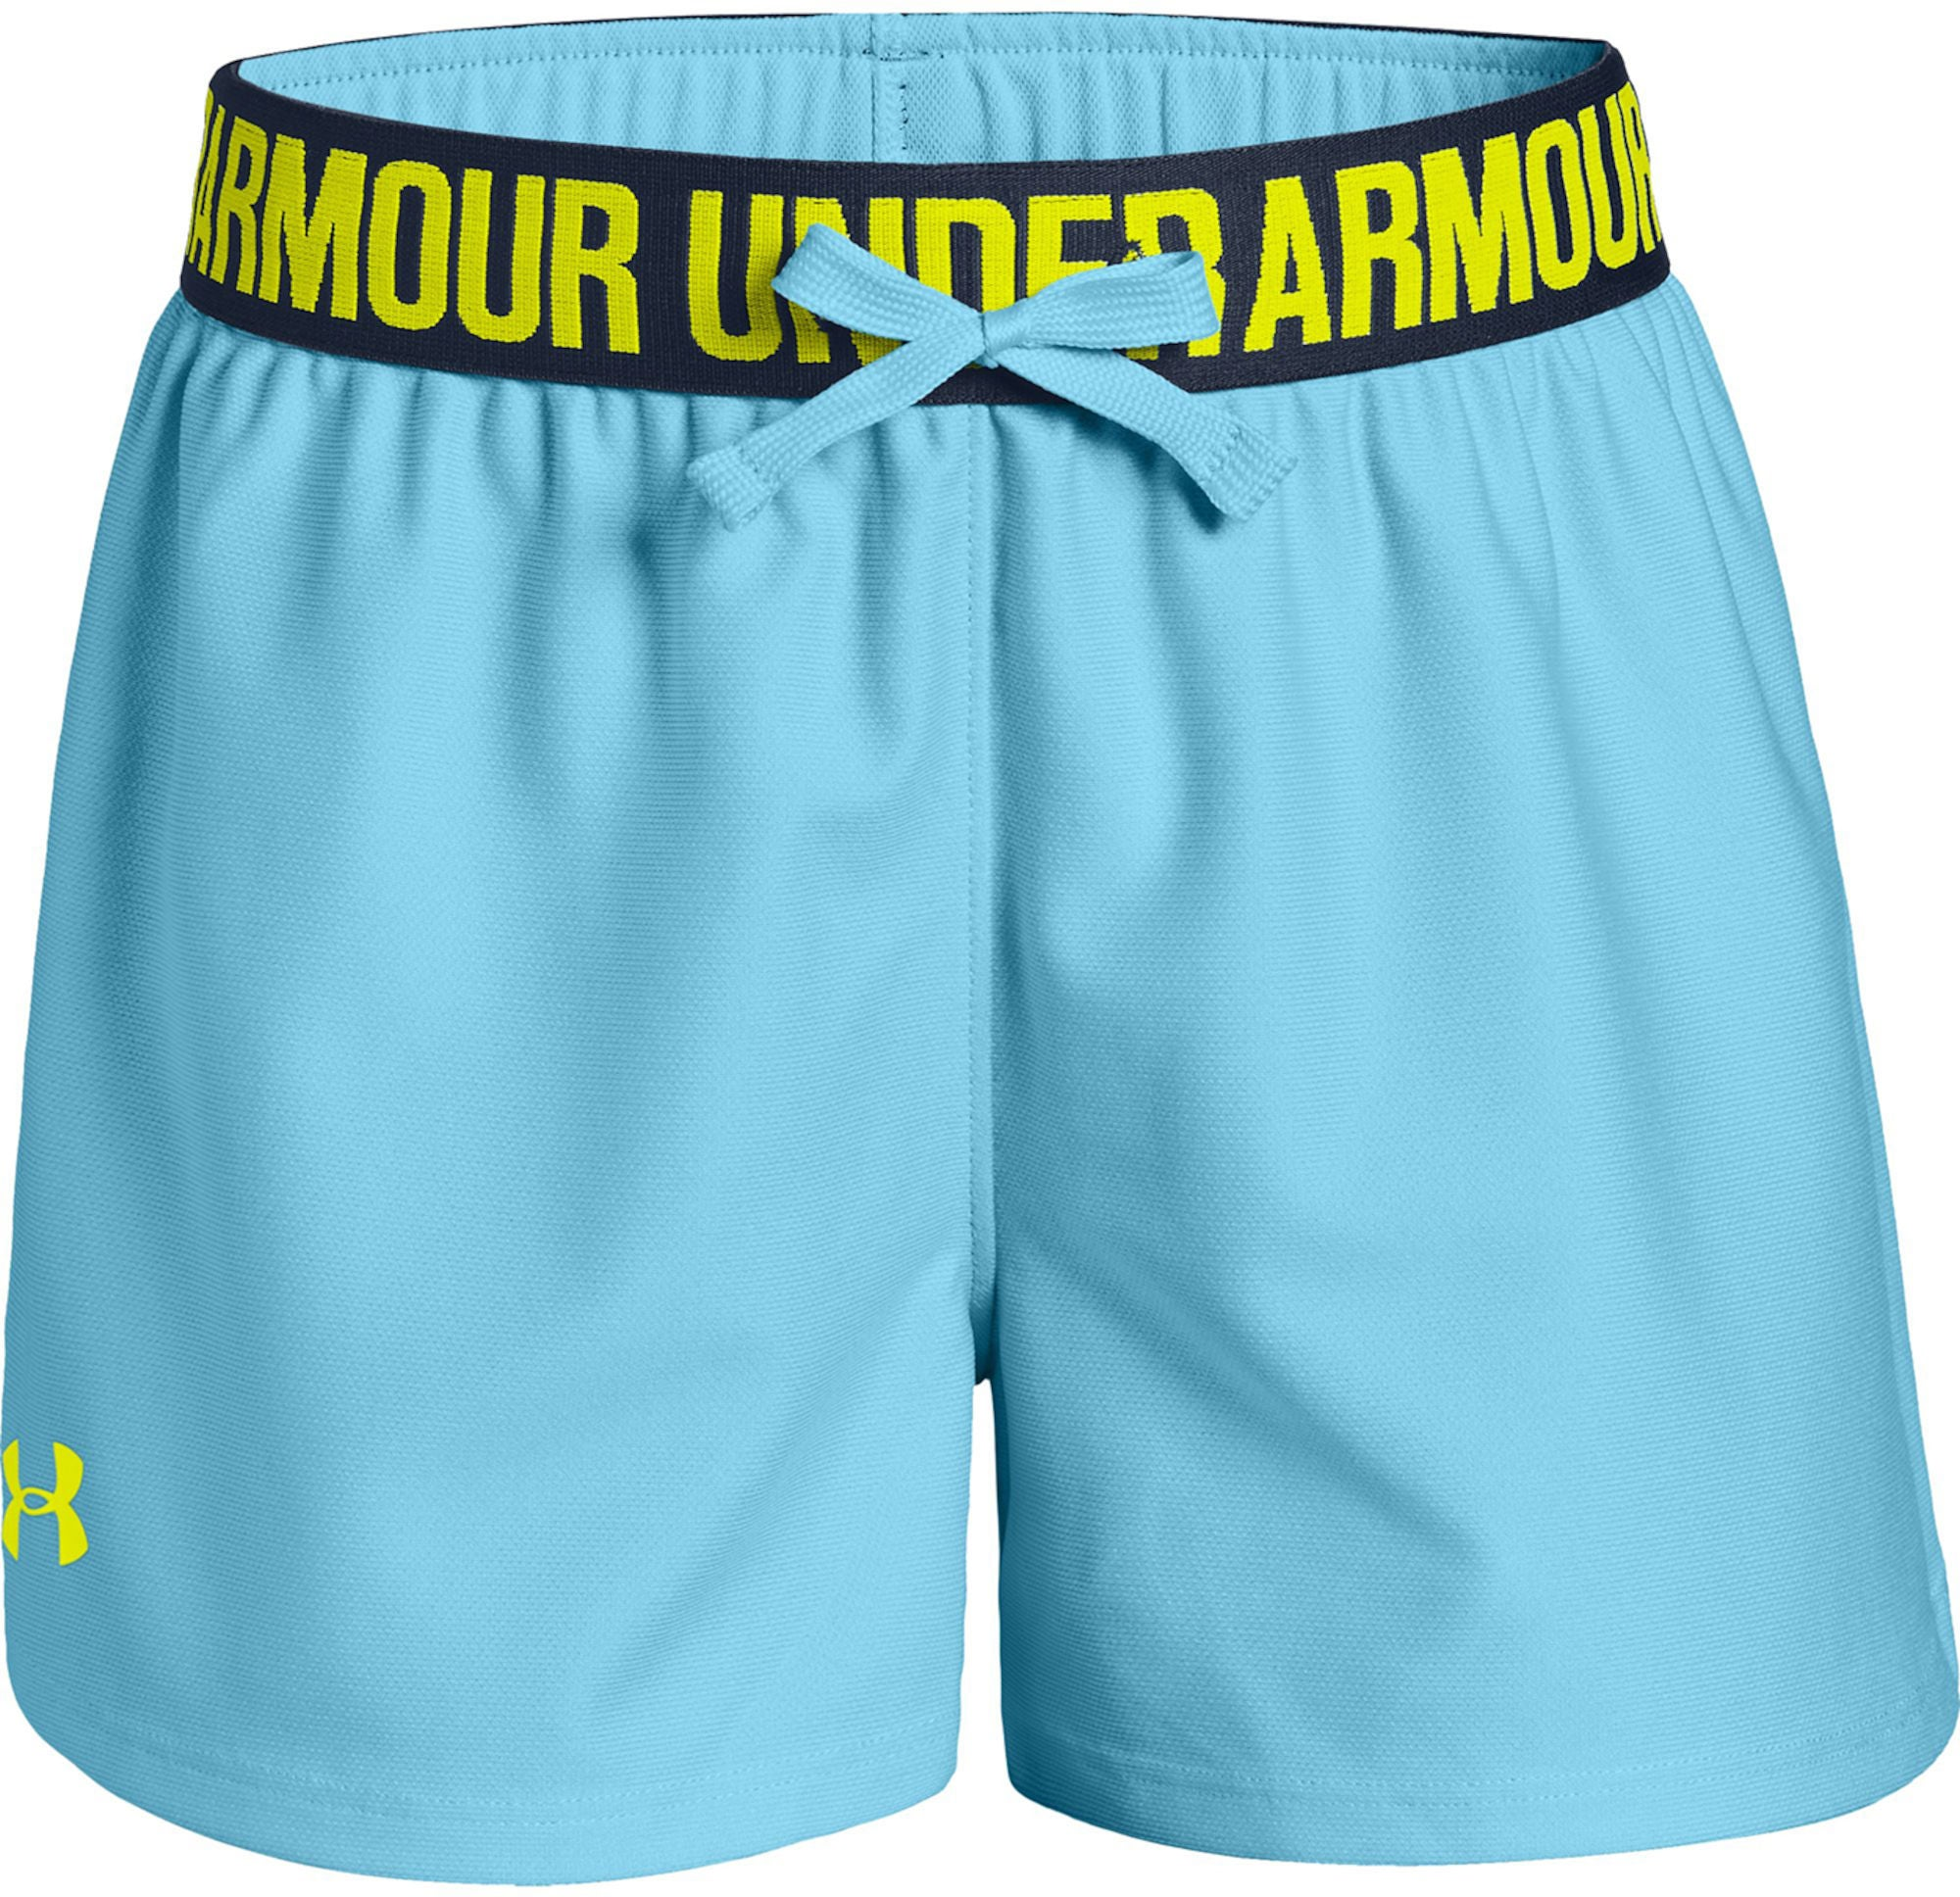 Under Armour Play Up Shorts, Venetian Blue XS